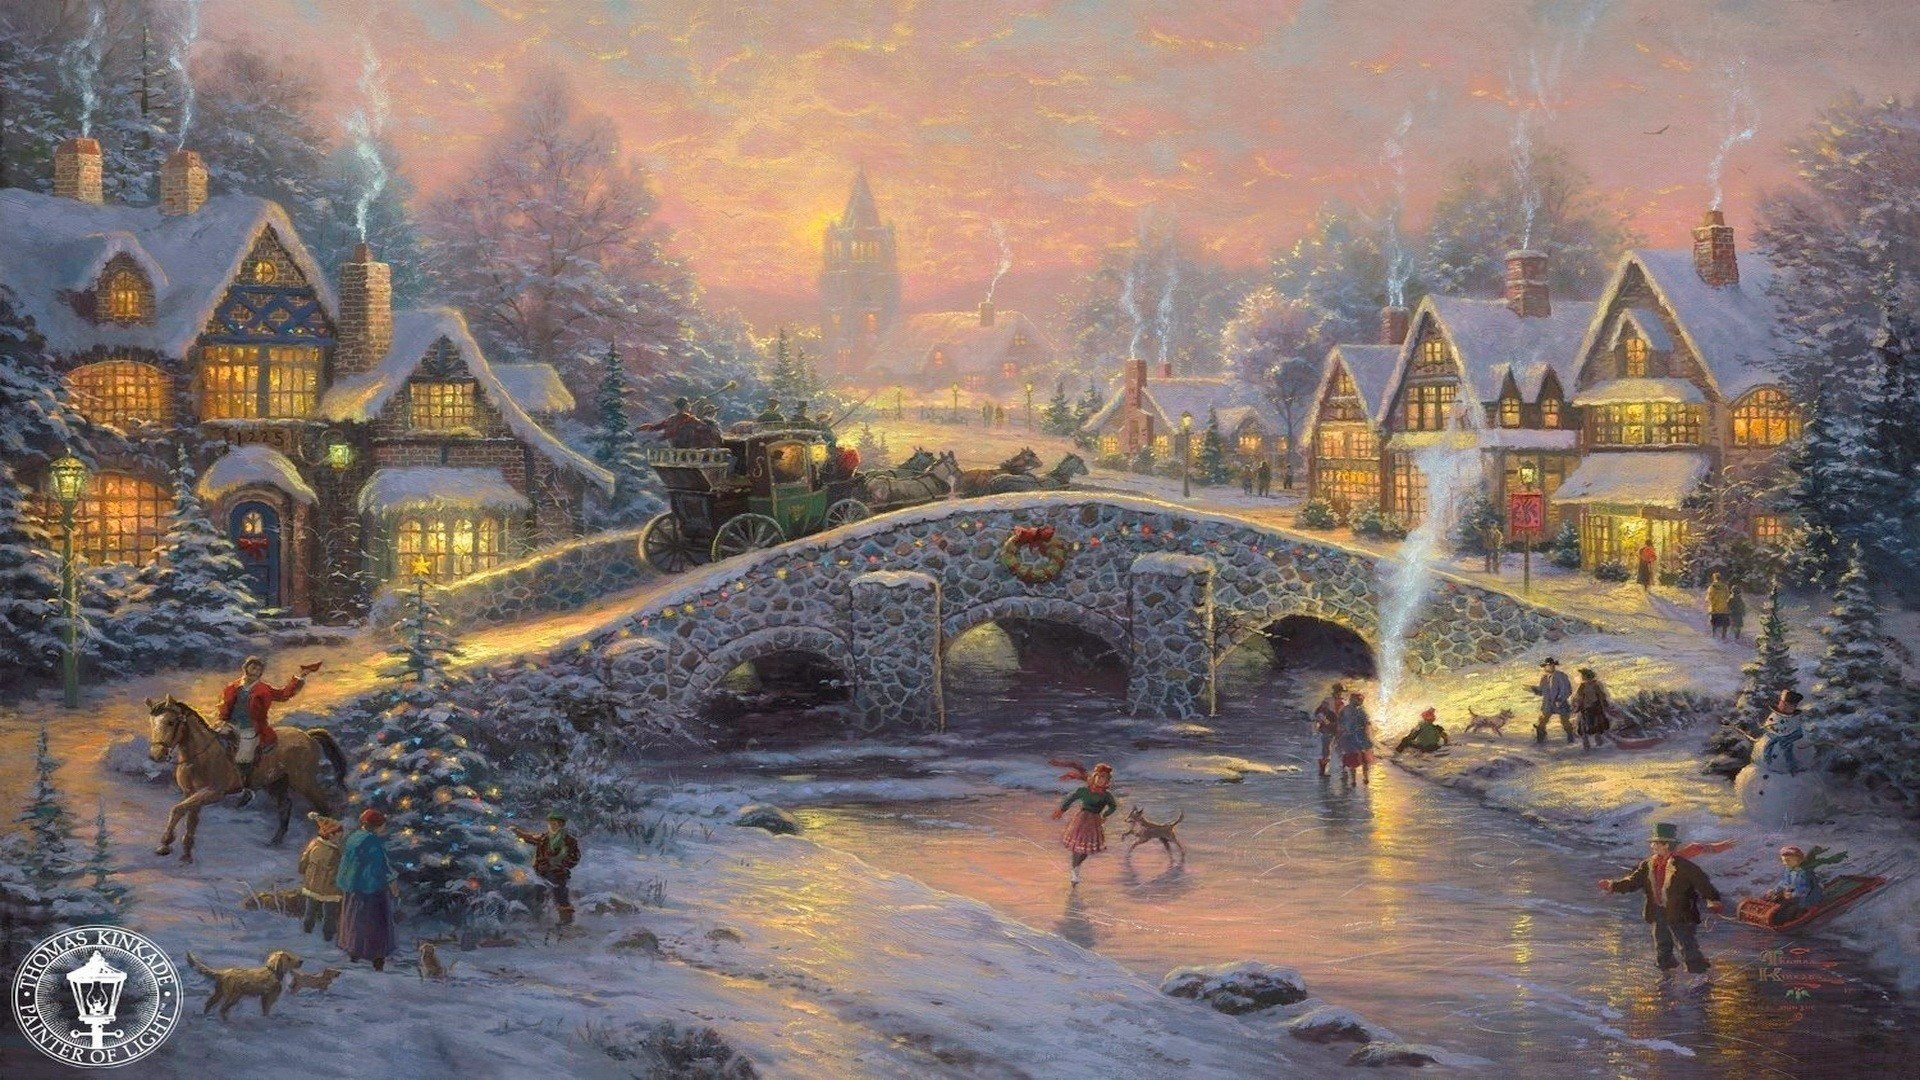 Hd Fireplace Video The Most Downloaded Hd Fireplace Video Thomas Kinkade Winter Wallpaper ·① Wallpapertag